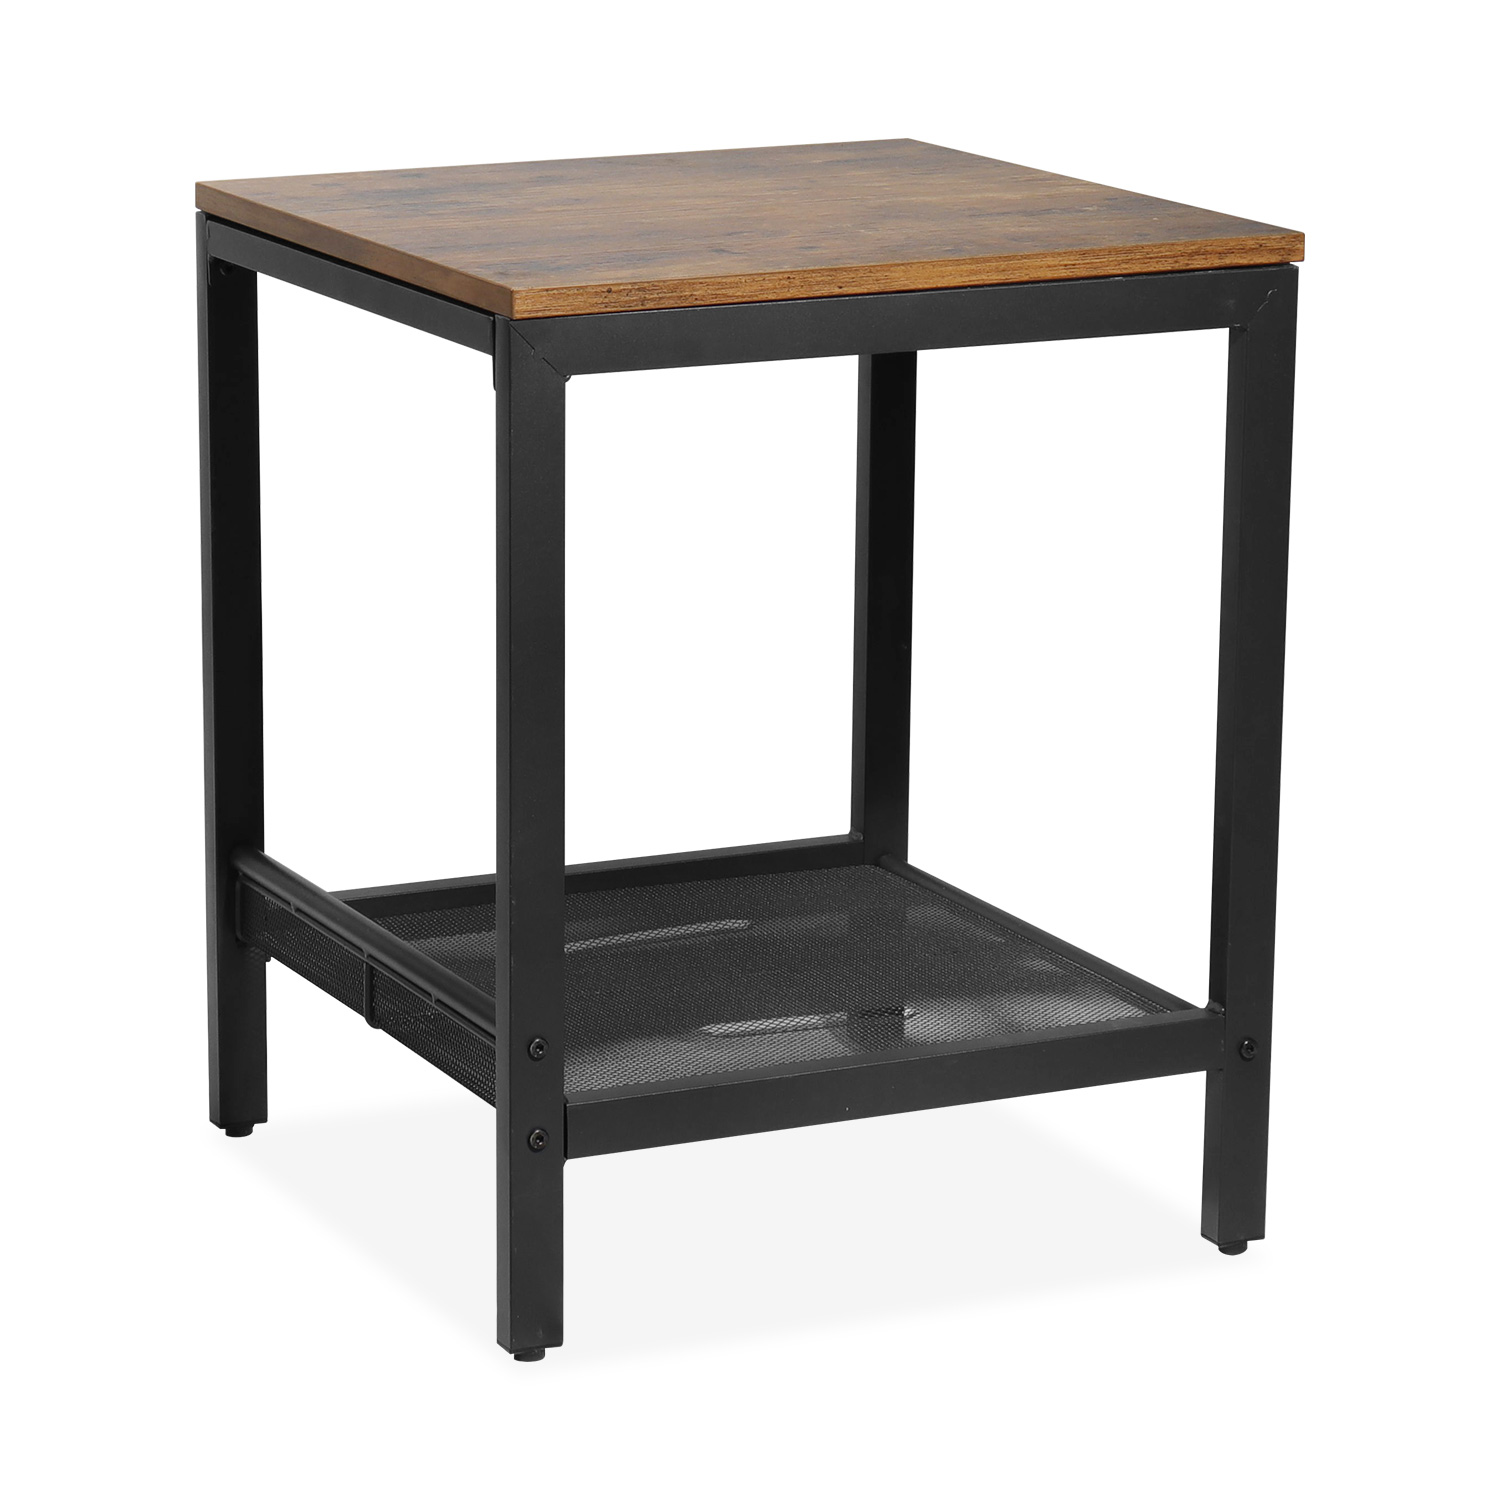 segmart farmhouse small side coffee table solid wood cocktail table with storage mesh shelf square tea table with frosted black iron frame for